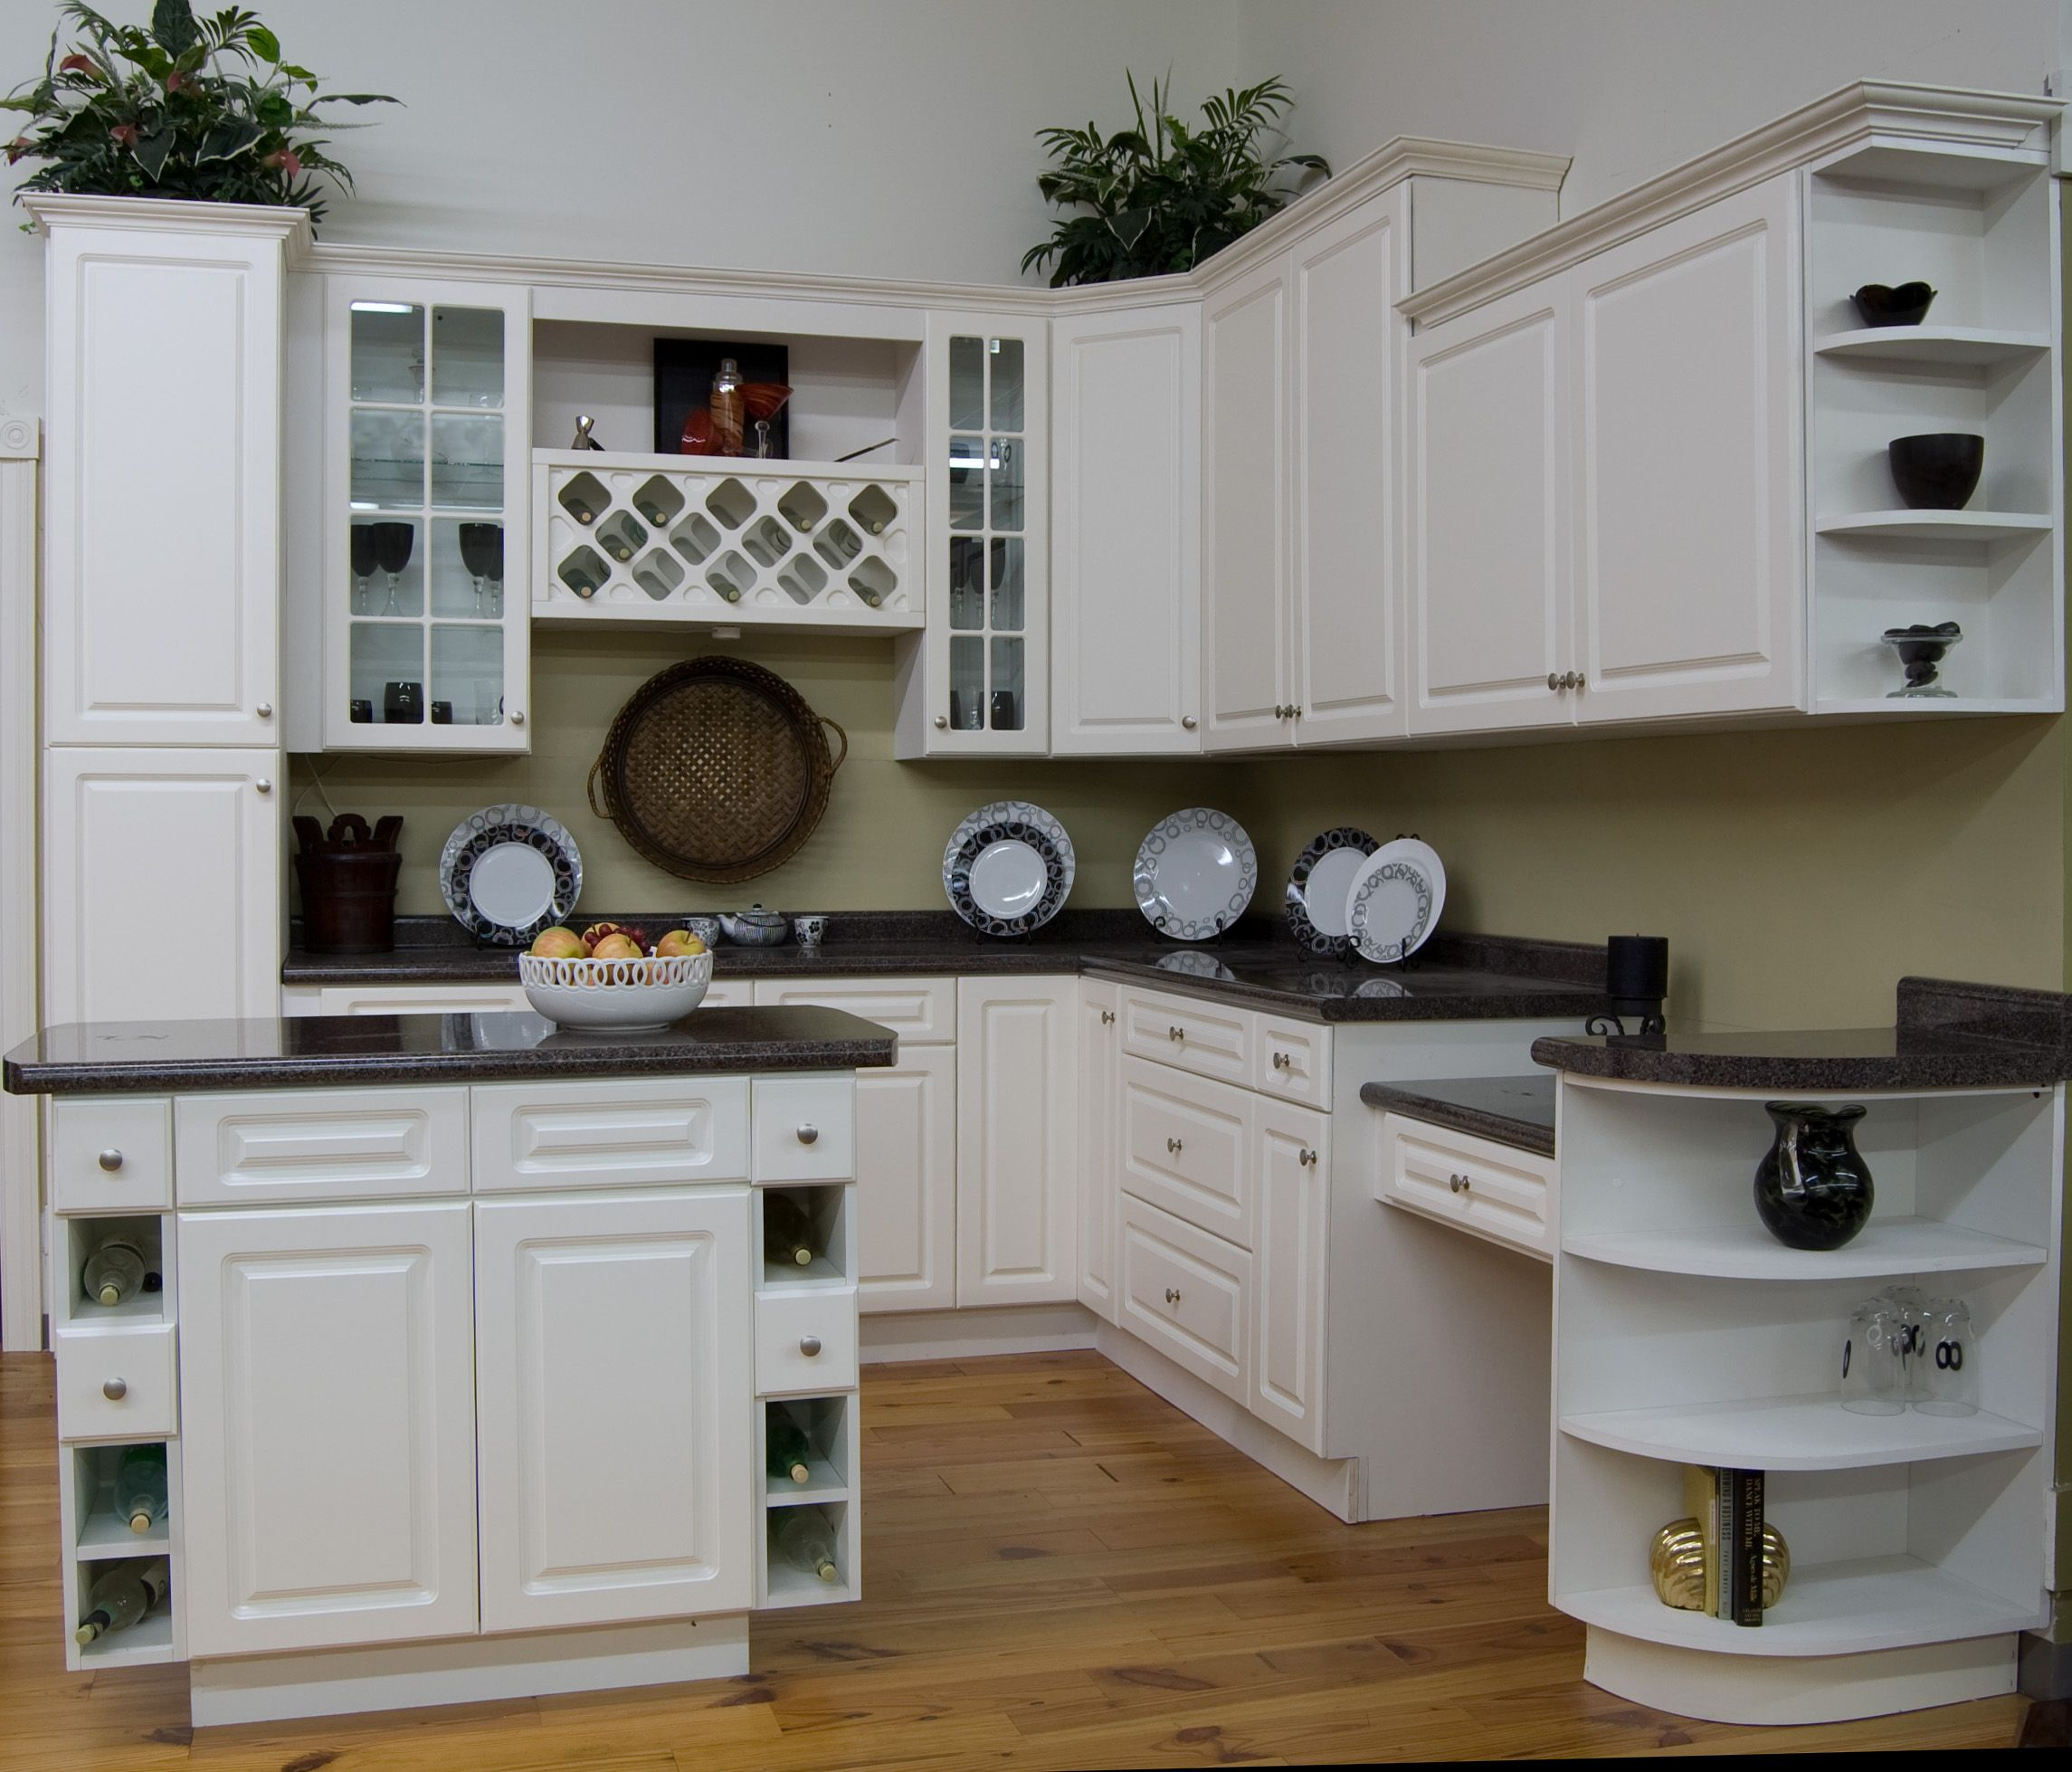 Greatbuycabinets Com The Lowest Prices For The Highest Quality White Cabinetry Check It Diy Kitchen Cabinets Cabinet Door Designs Buy Cabinets